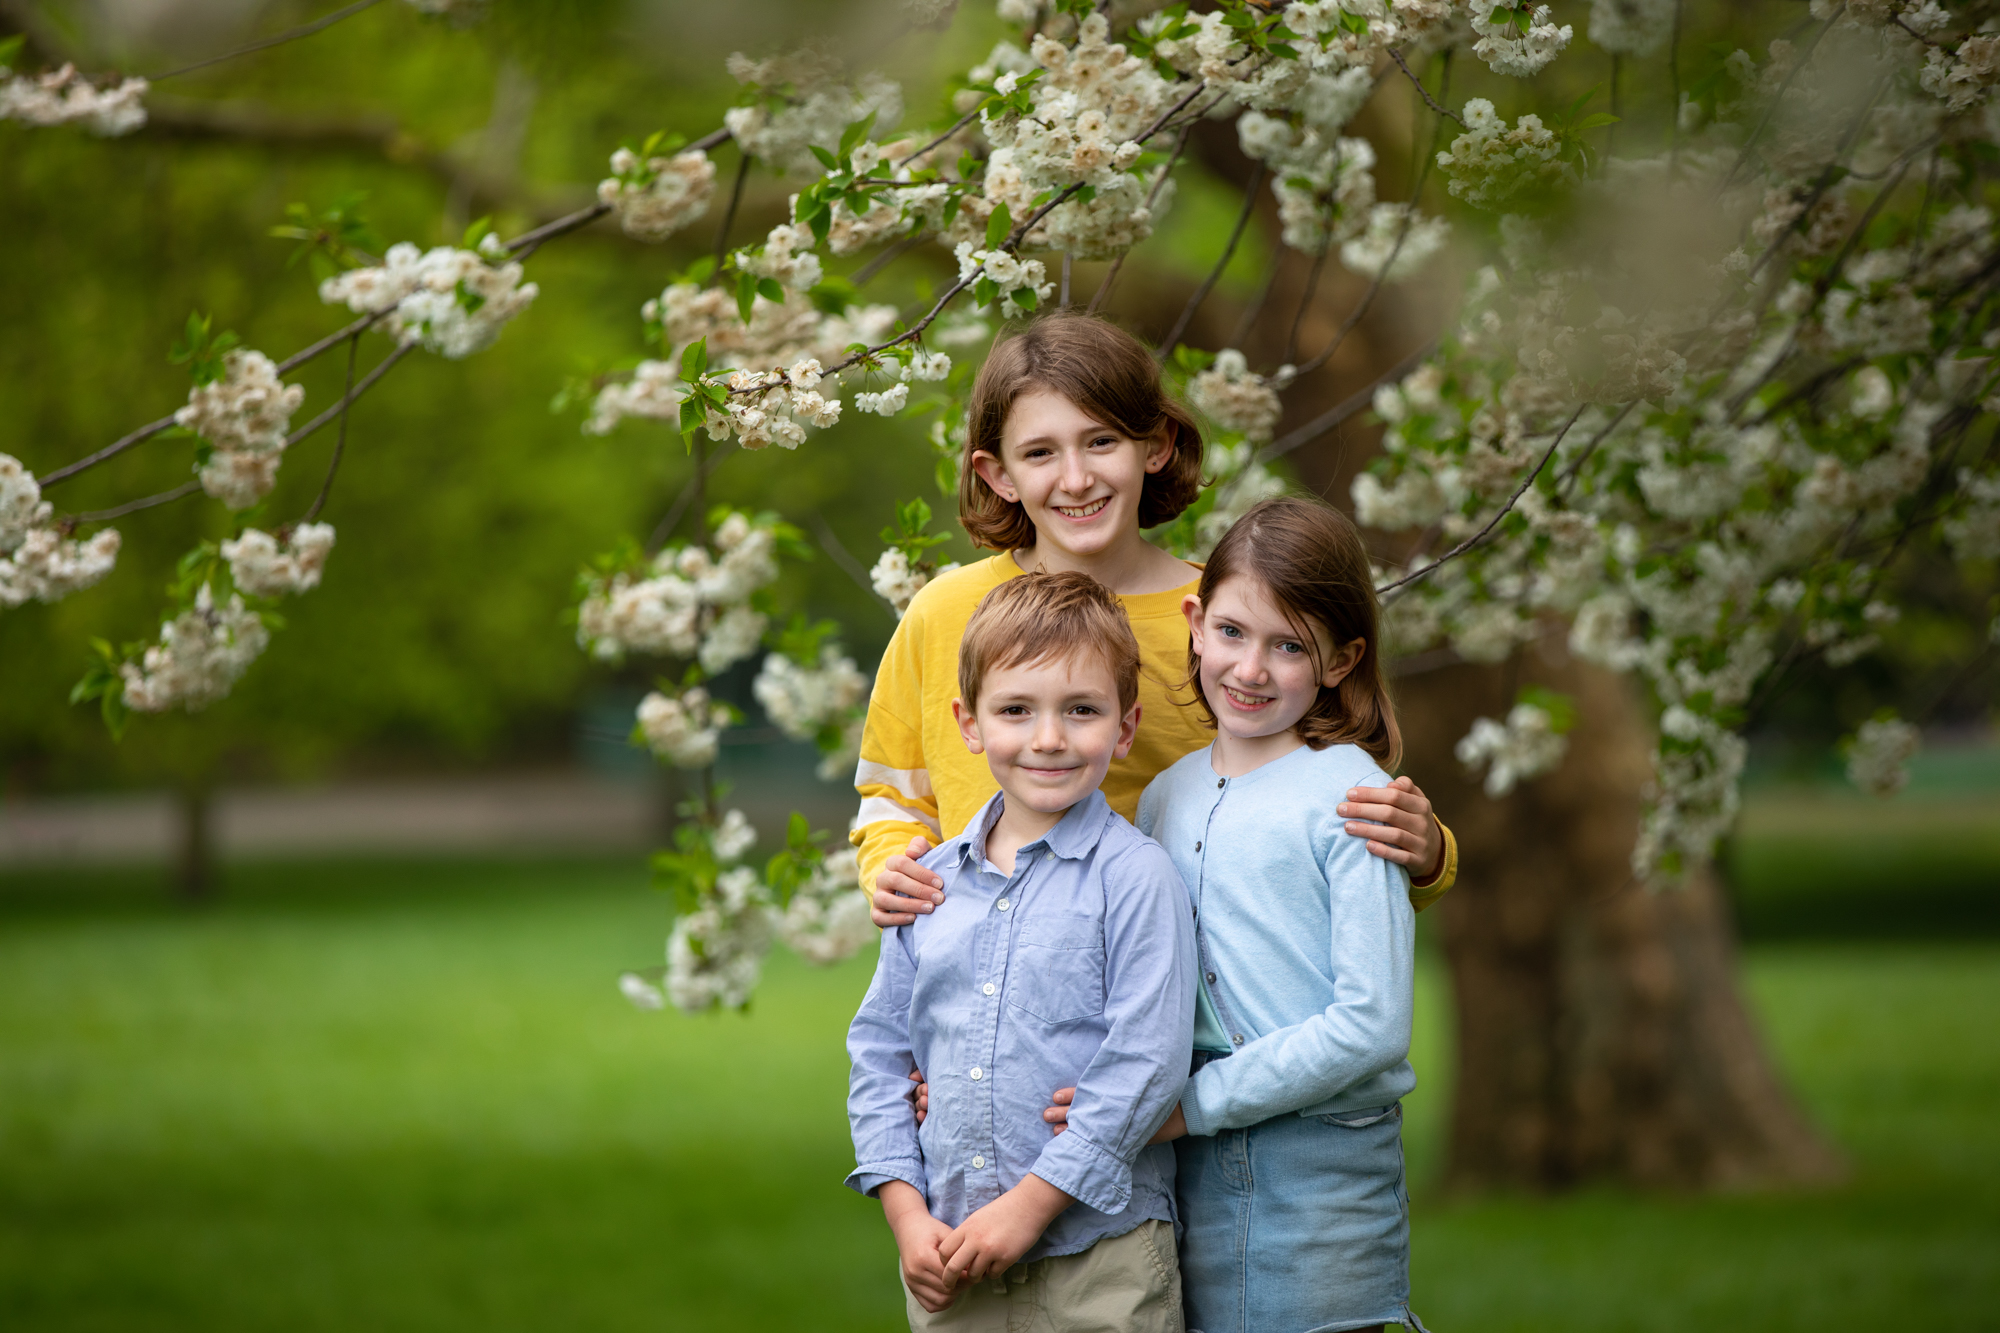 Children and family photography in Herne Hill, London